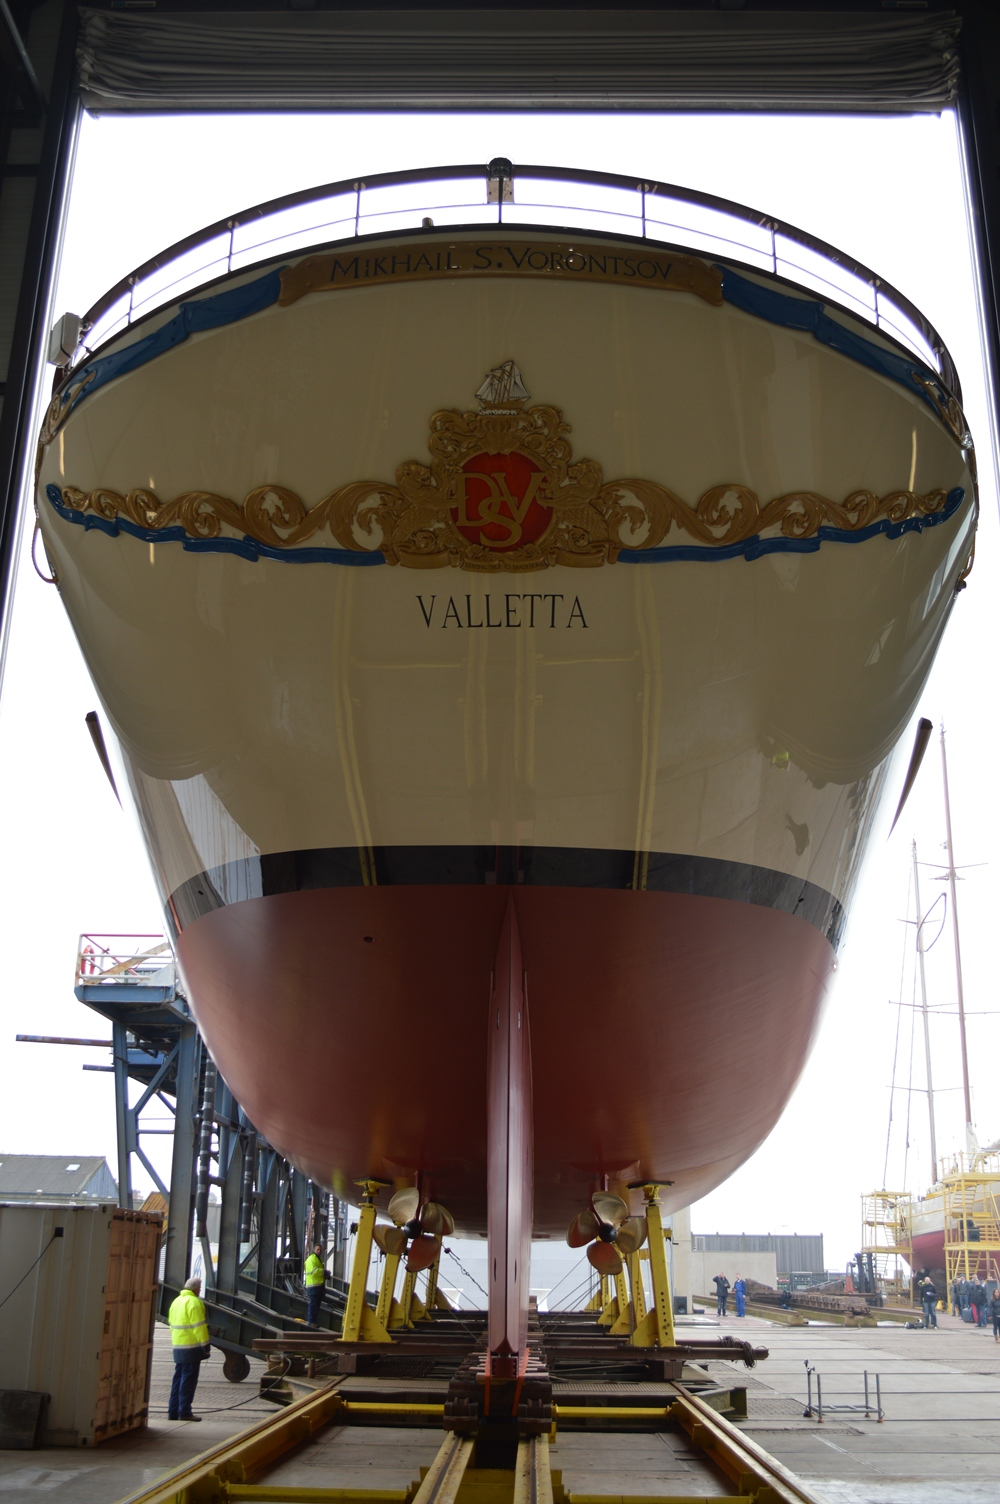 Mikhail S. Vorontsov Yacht ready to hit the water at Balk Shipyard - Image courtesy of Balk Shipyard